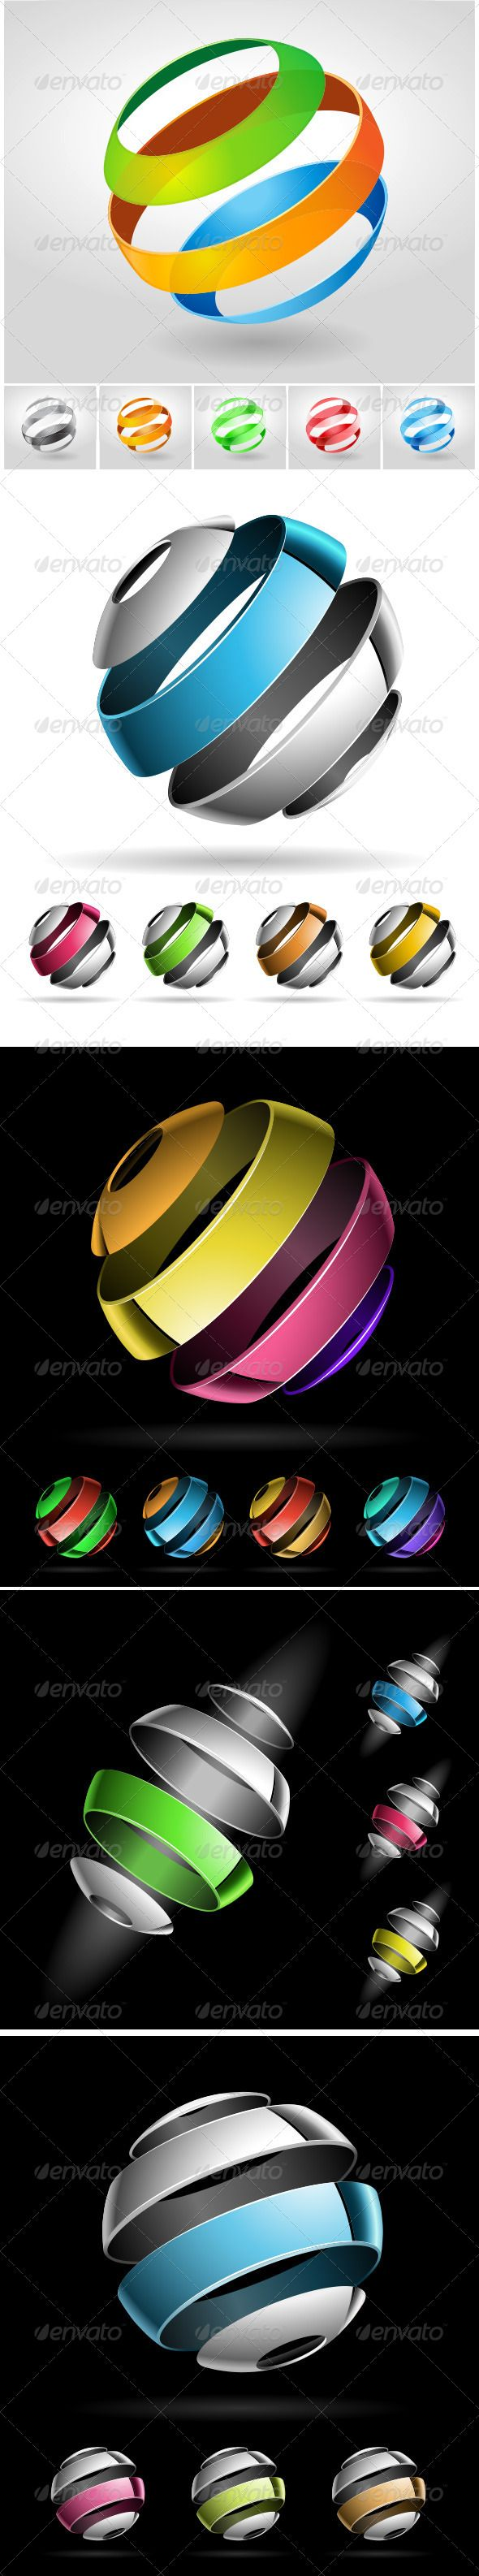 Popular Youtube Design Star Html Html Html Html Html Html Html - Abstract sphere collection